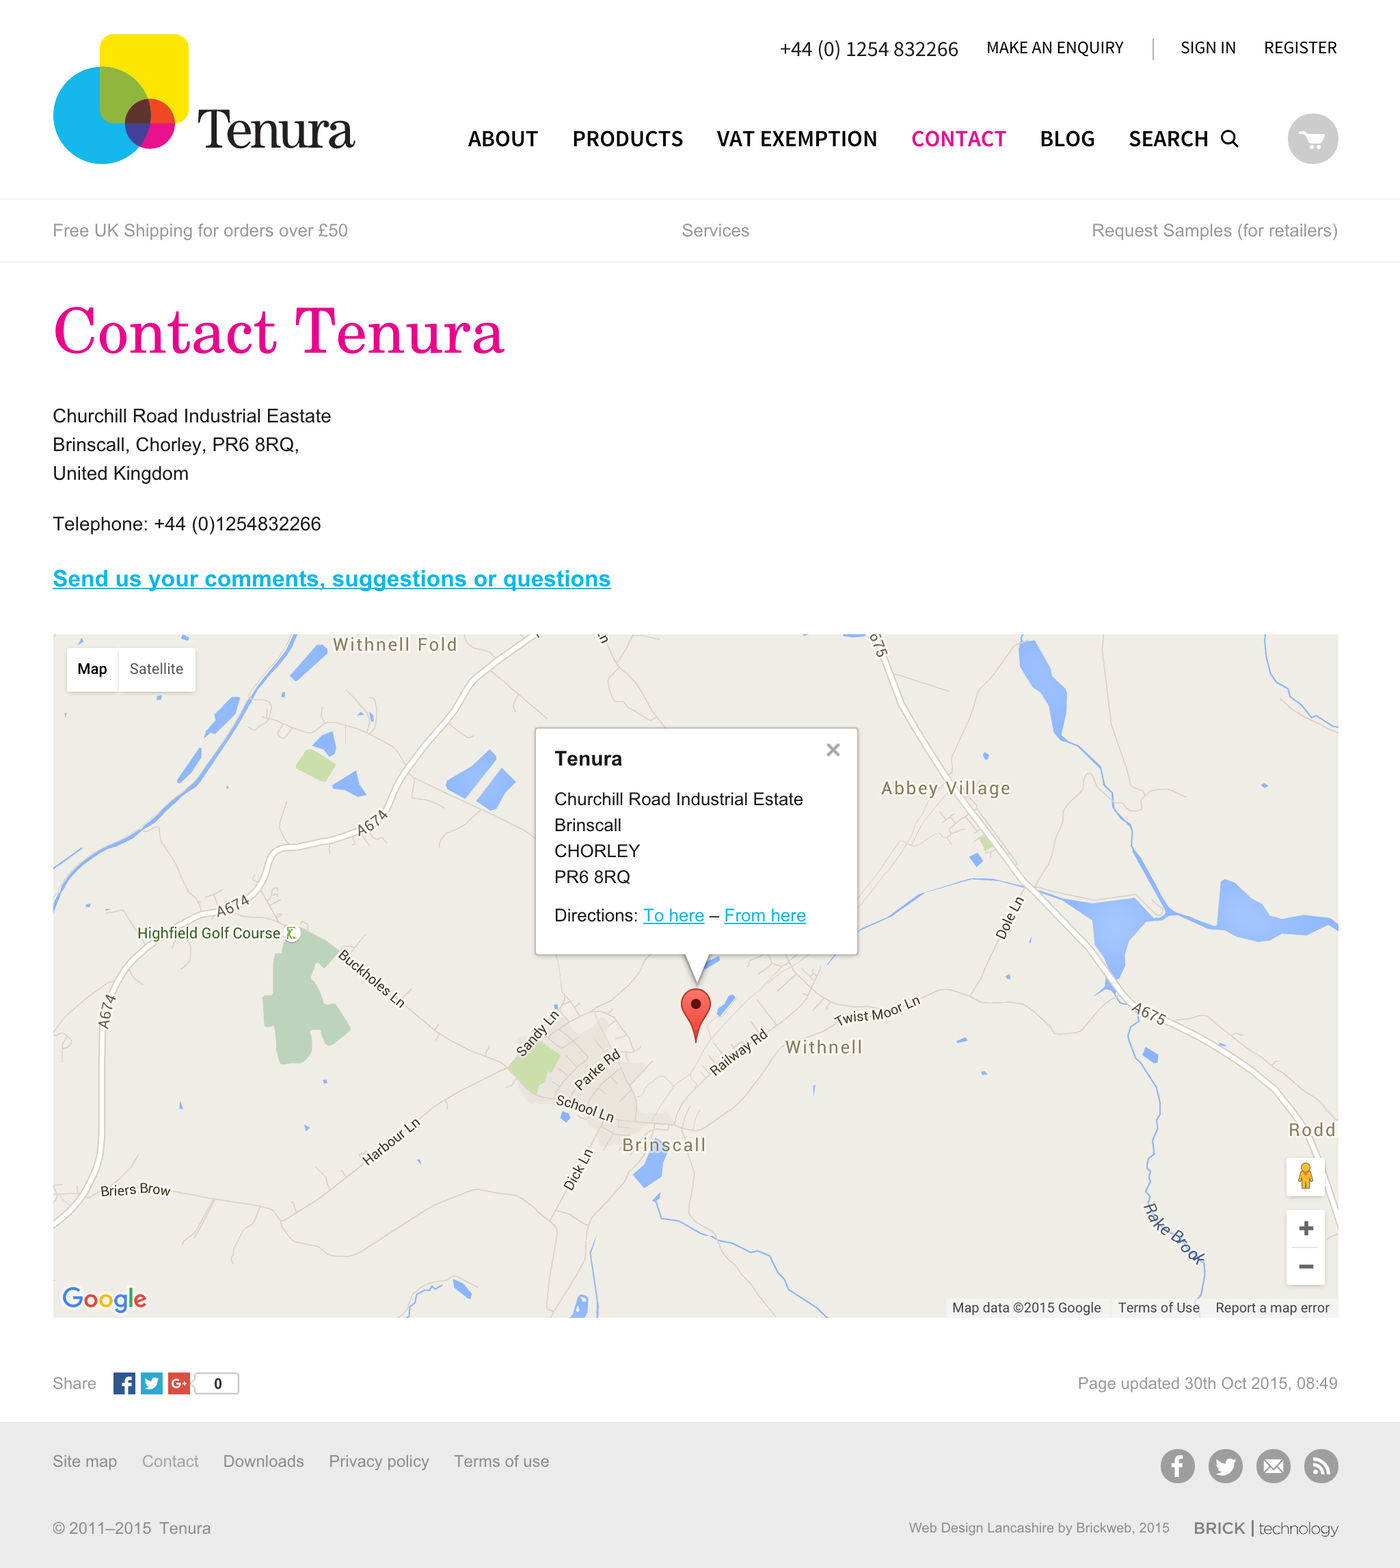 Tenura UK Contact us